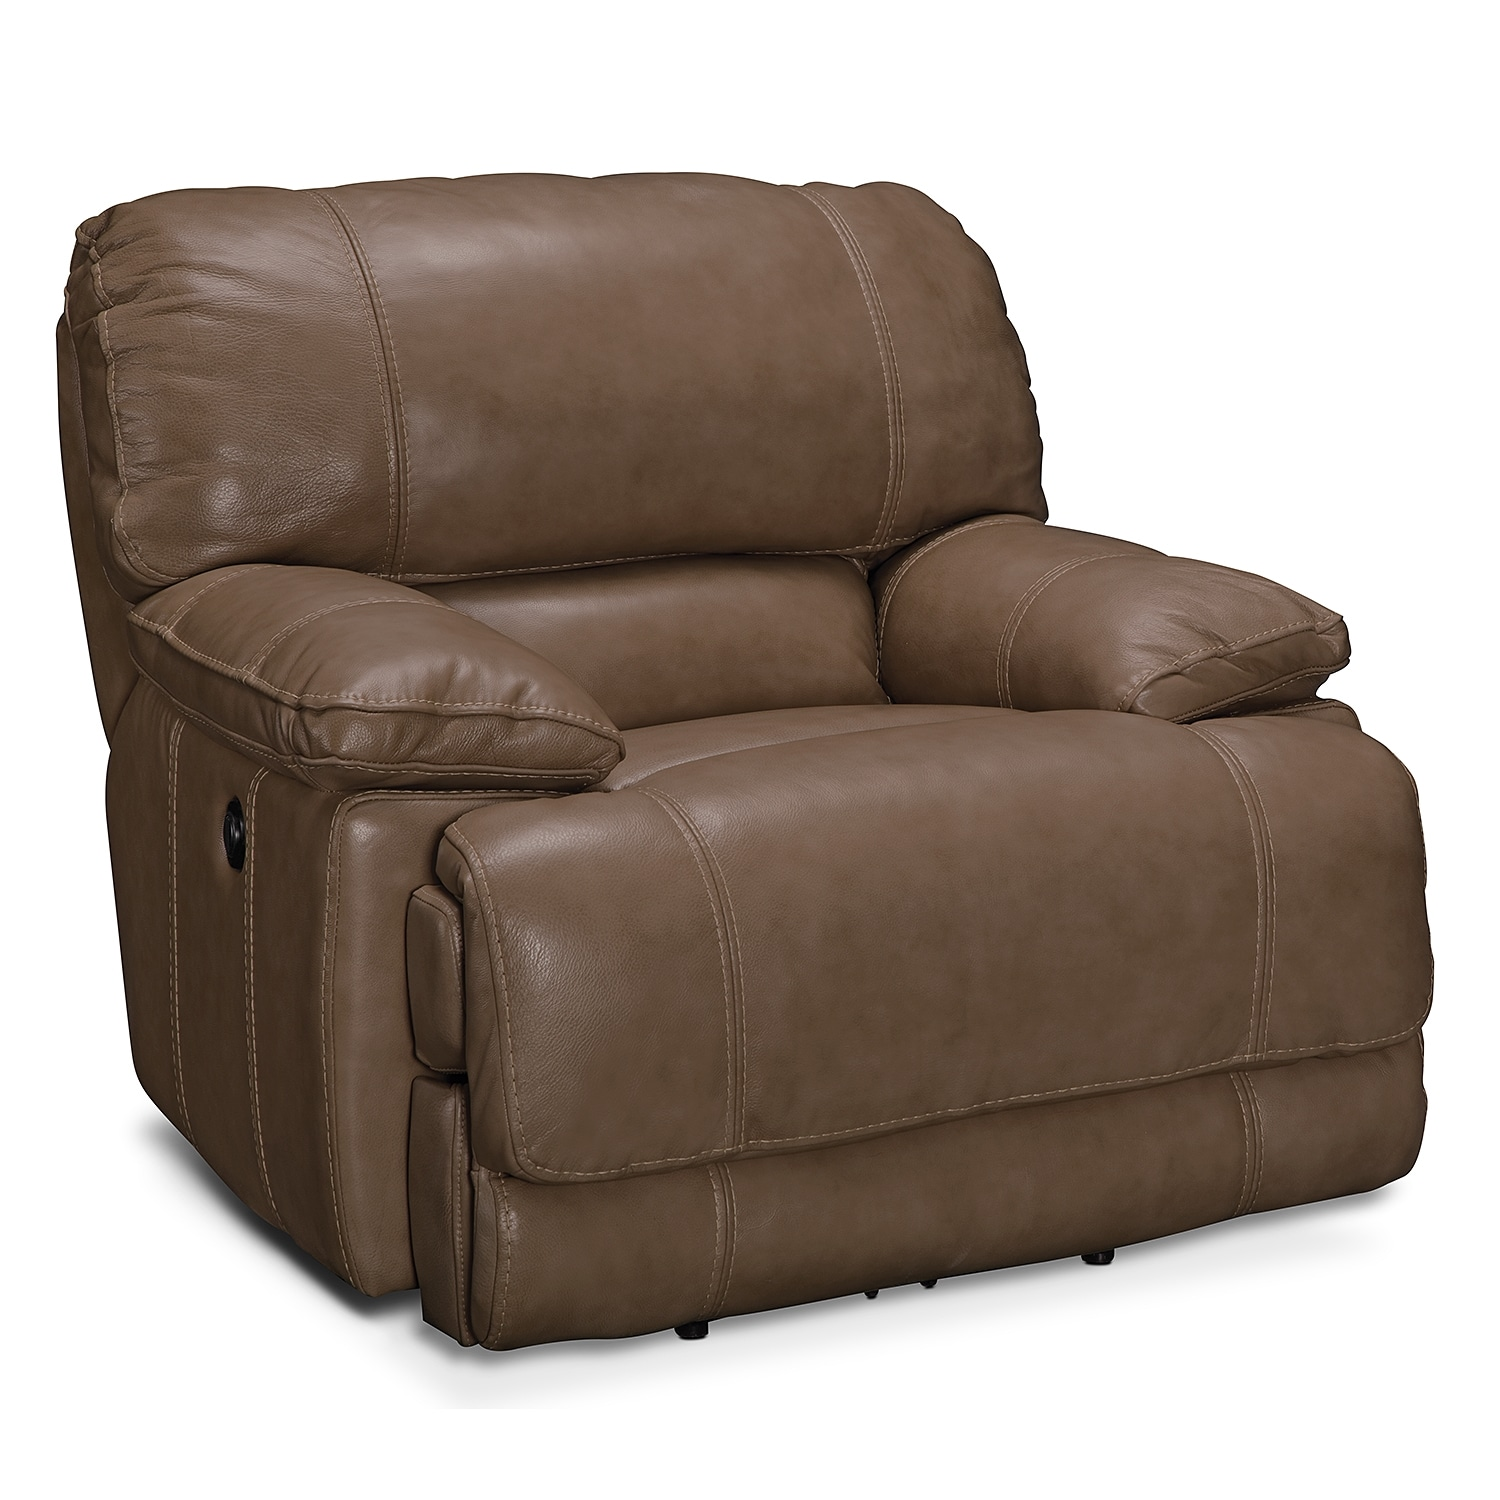 St. Malo II Power Recliner